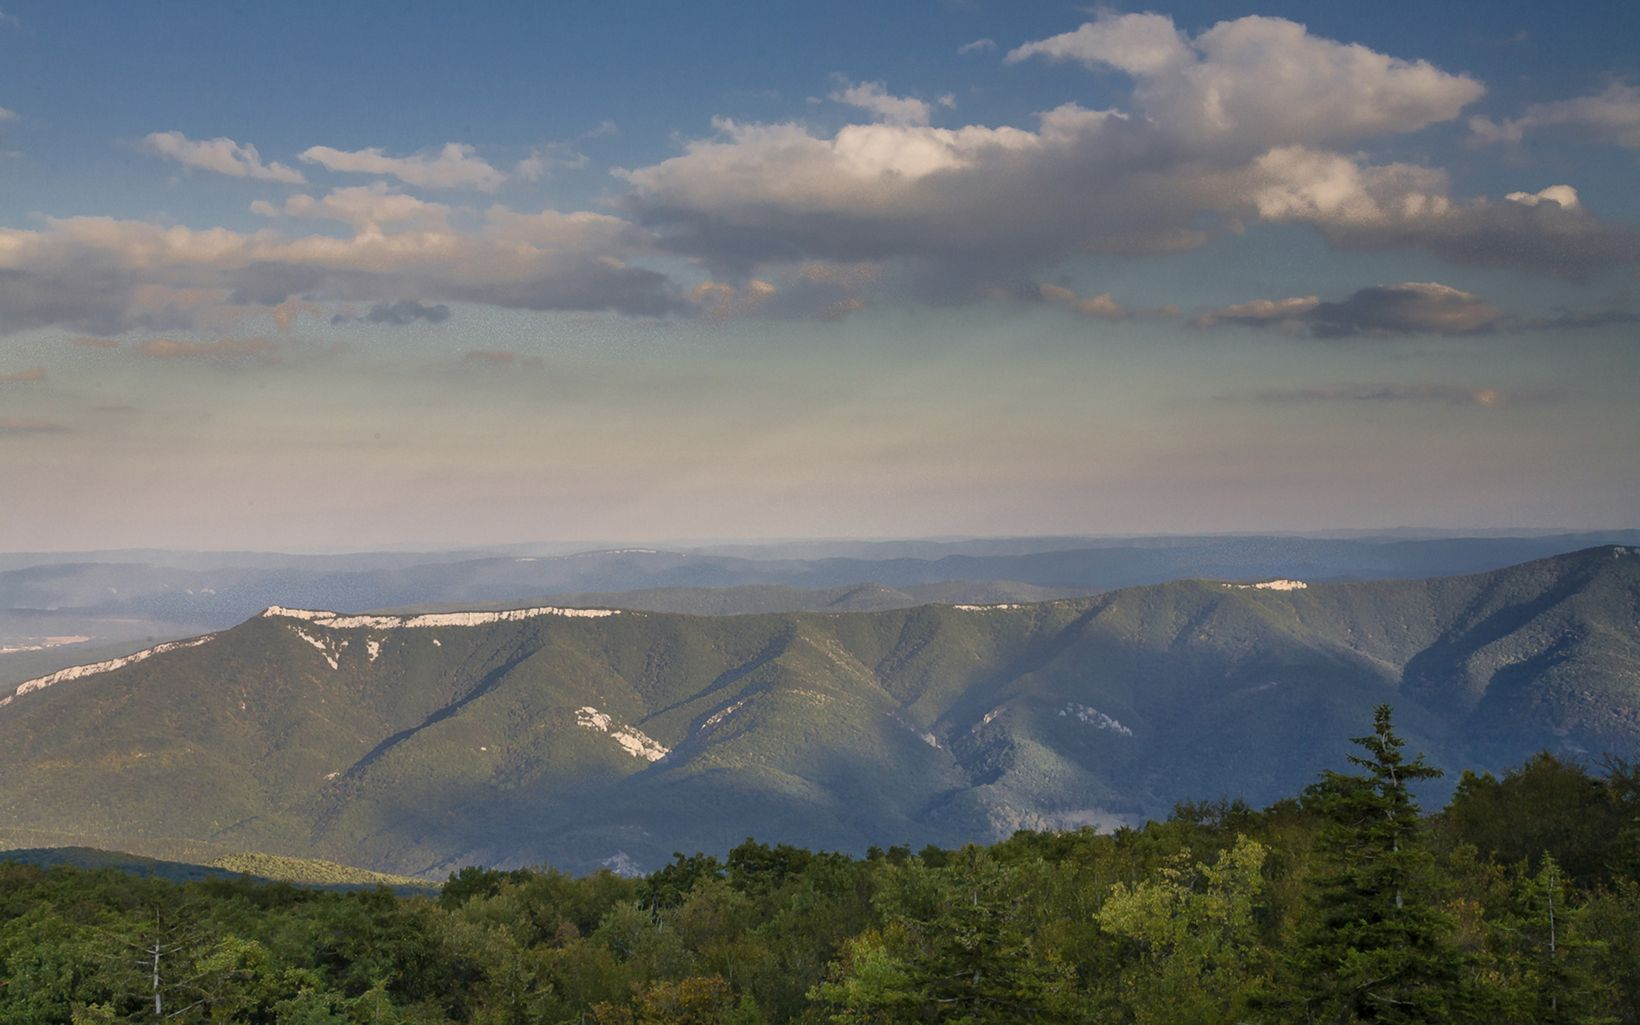 View of the  North Fork Mountain from the Allegheny Fro